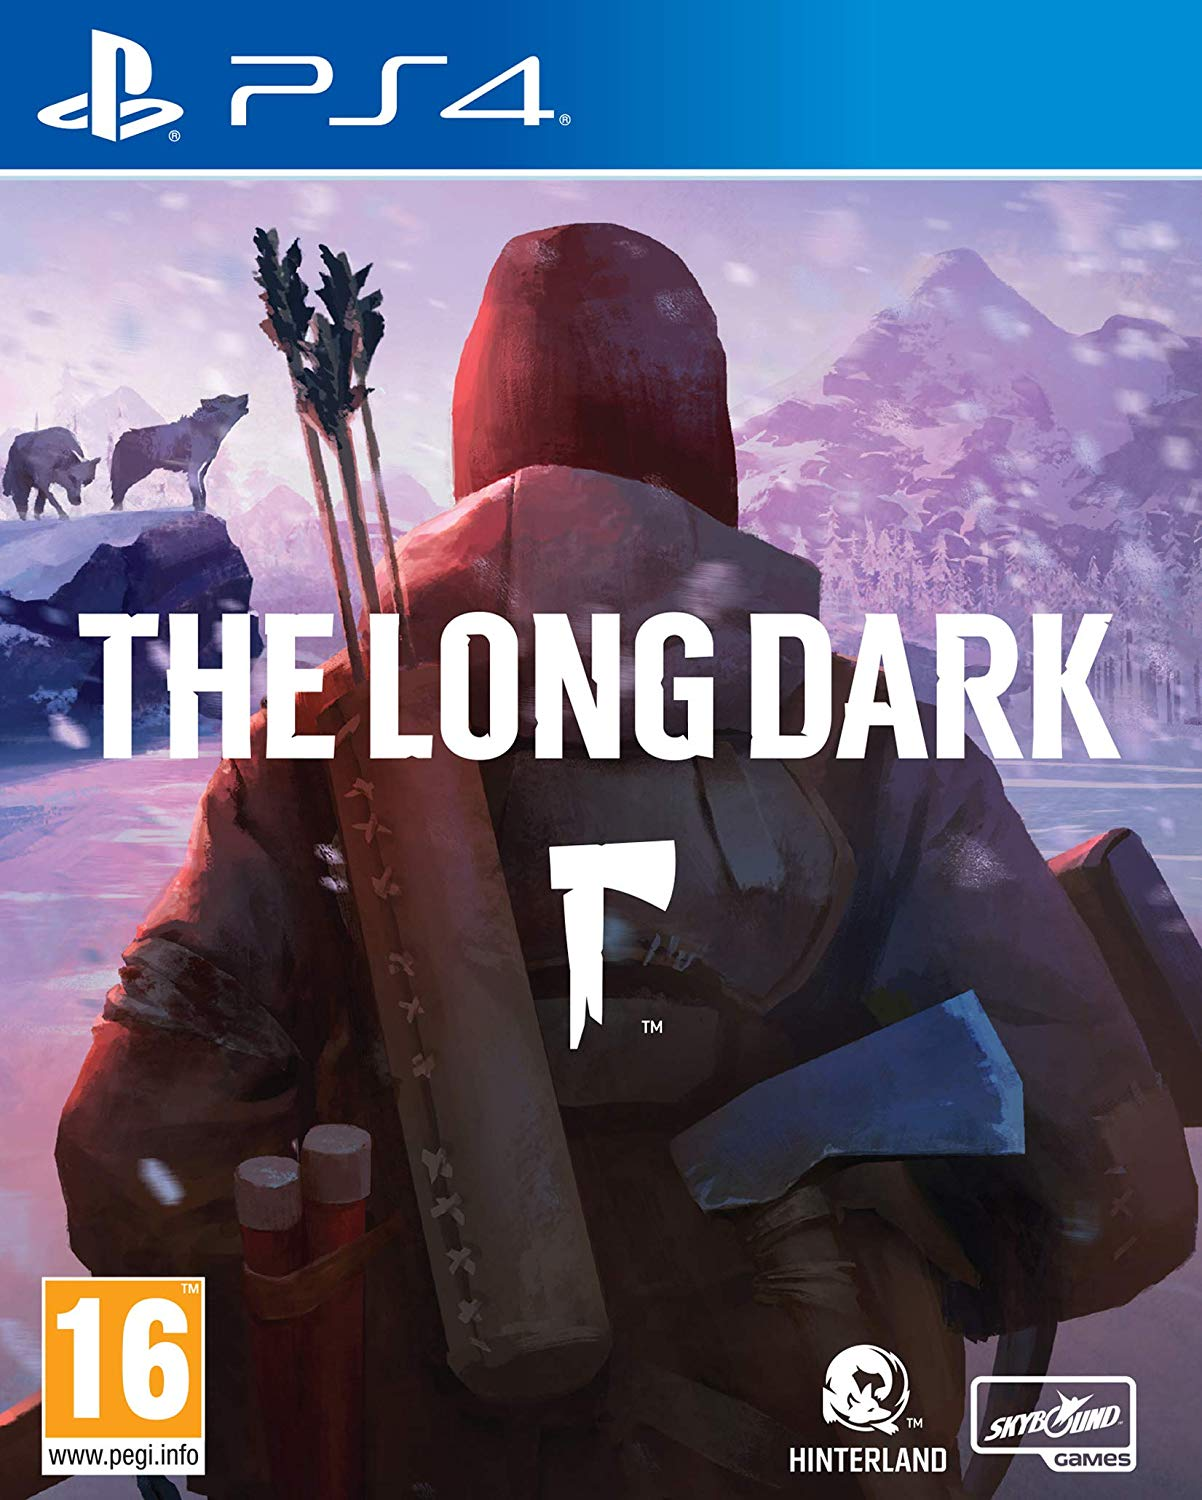 The Long Dark PS4, PS4, DVDMEGASTORE, DVDMEGASTORE